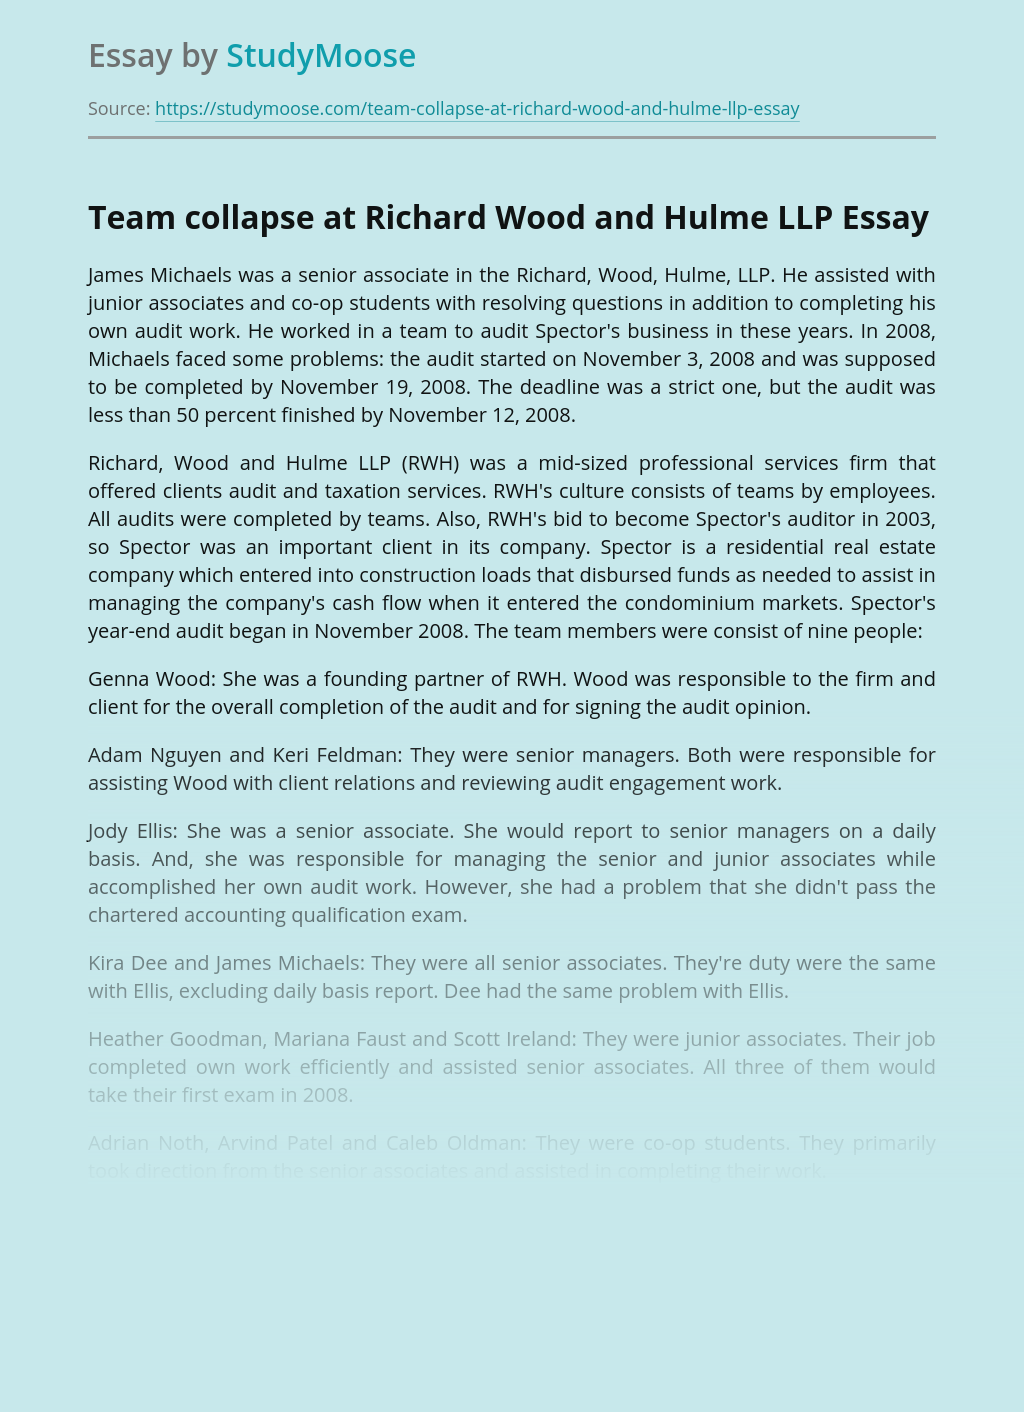 Team collapse at Richard Wood and Hulme LLP